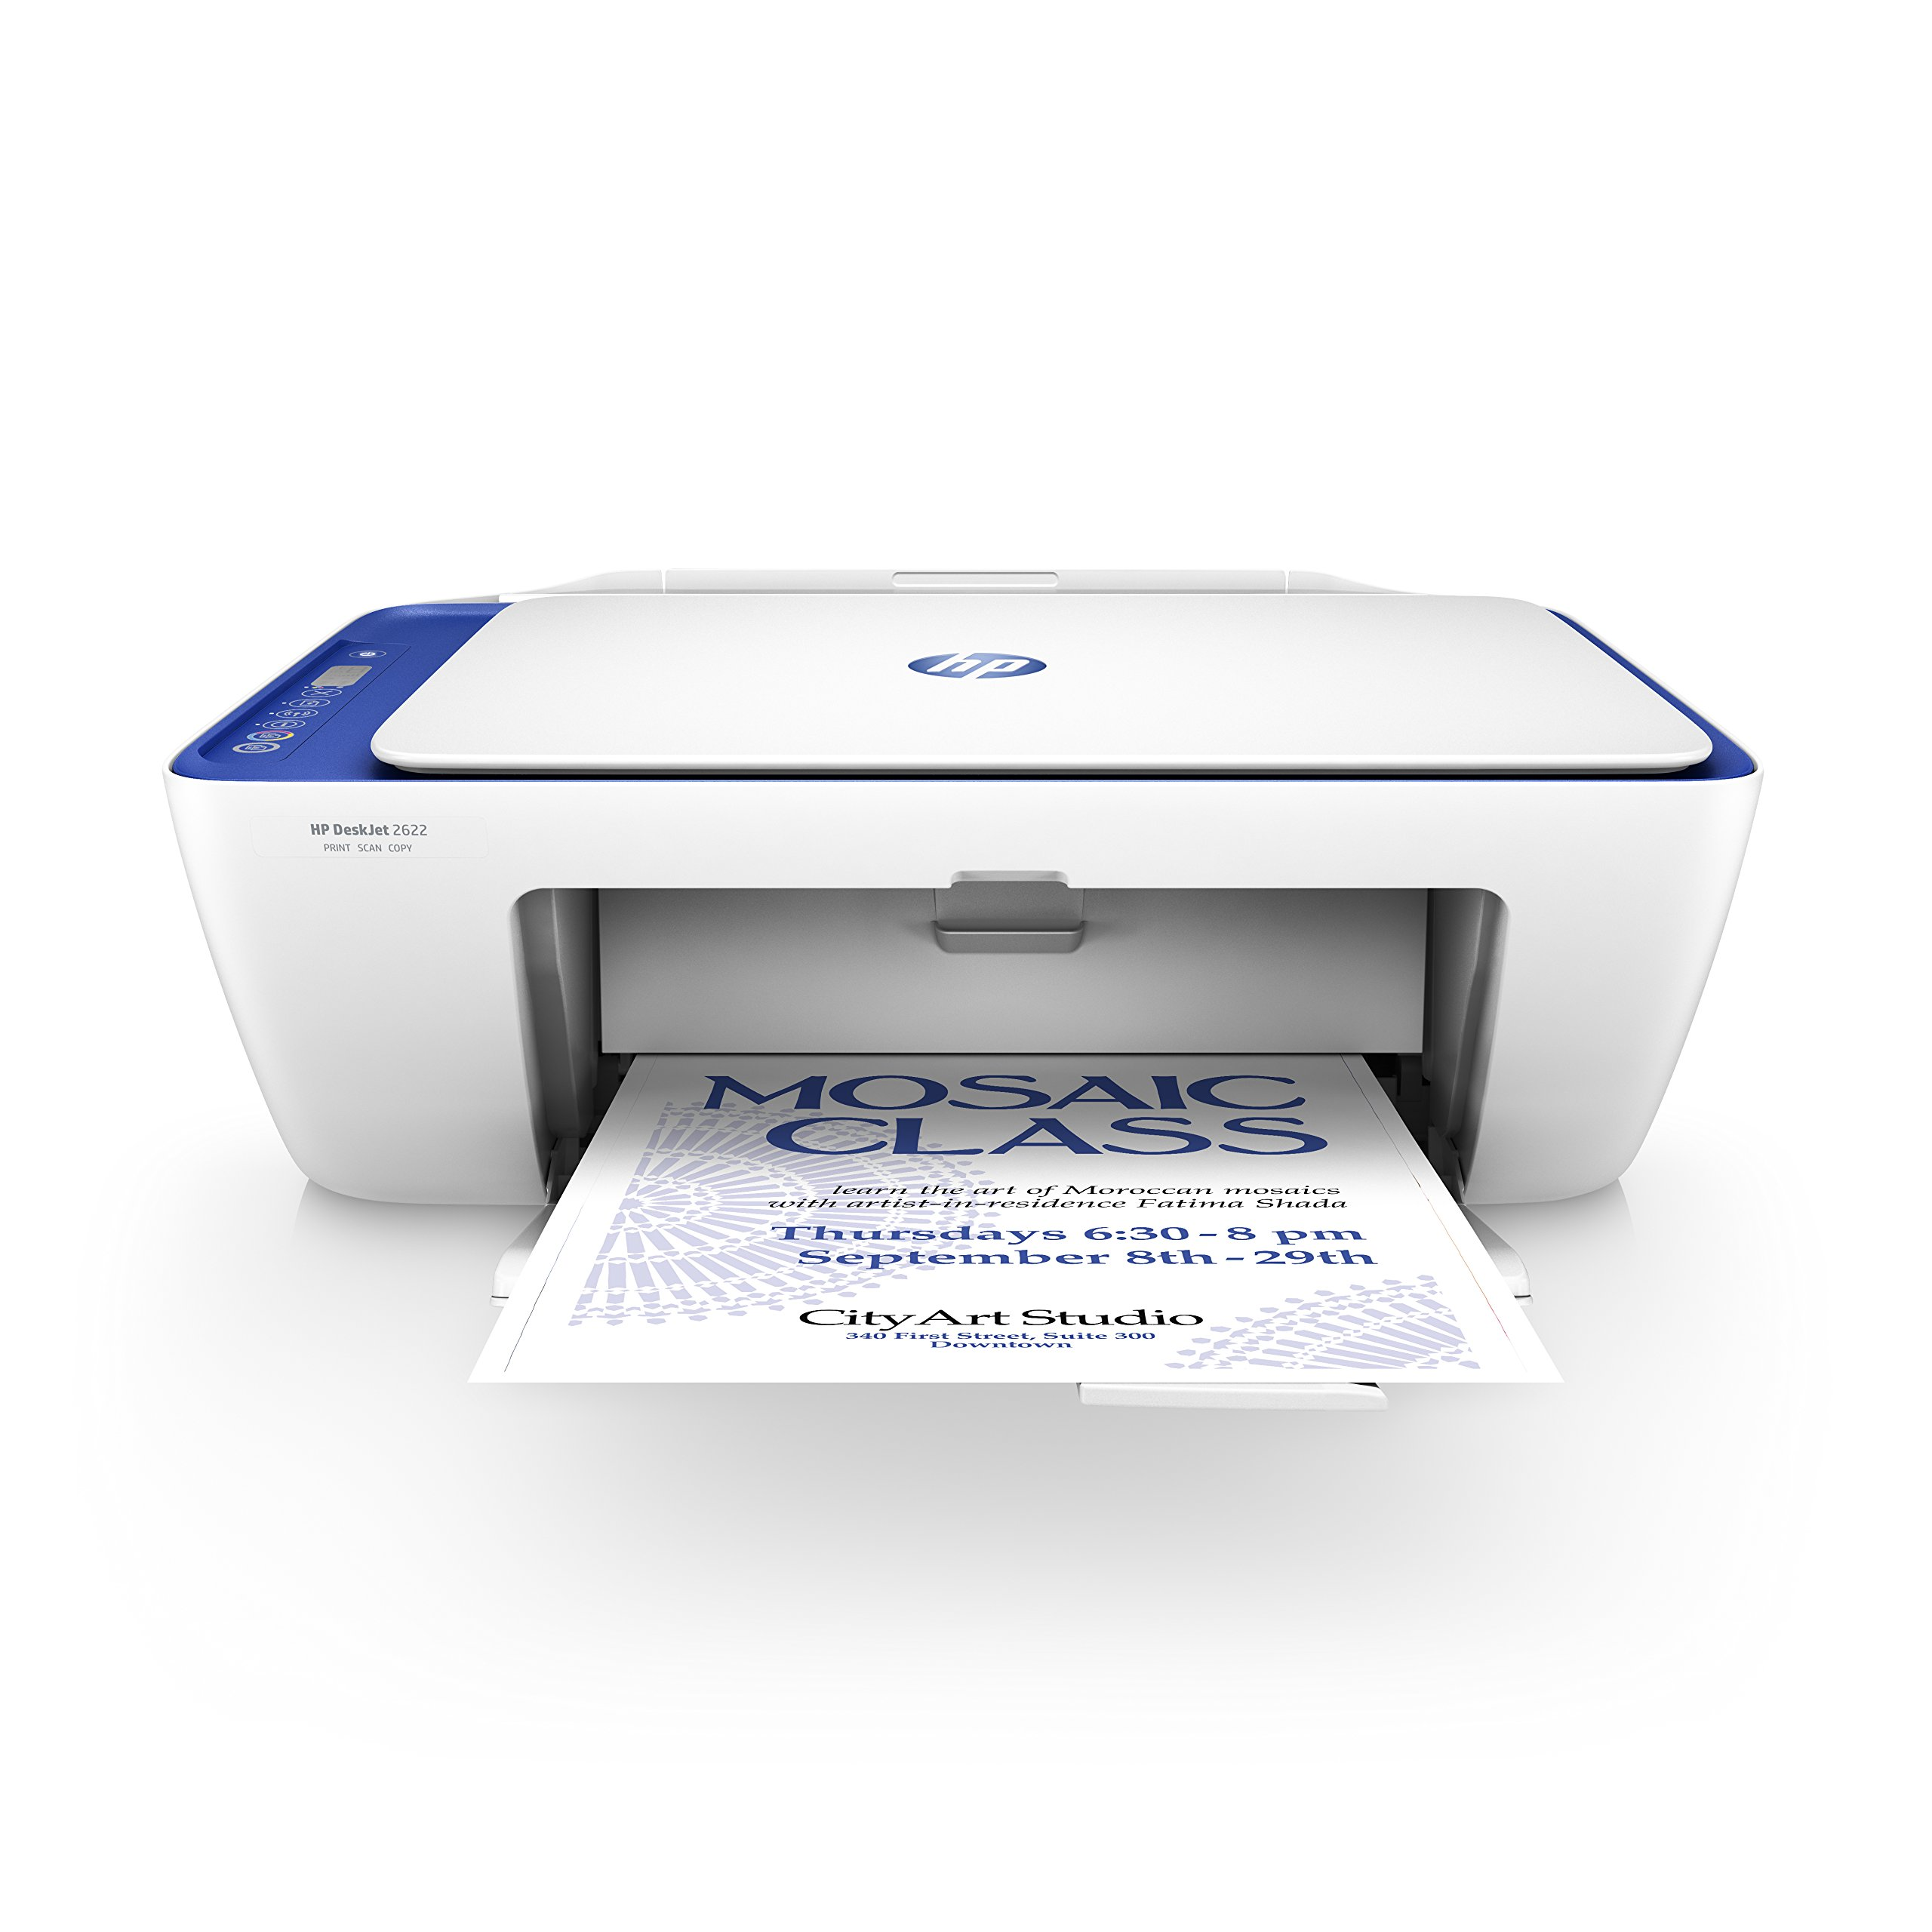 HP DeskJet 2622 All-in-One Compact Printer (Blue) (V1N07A)